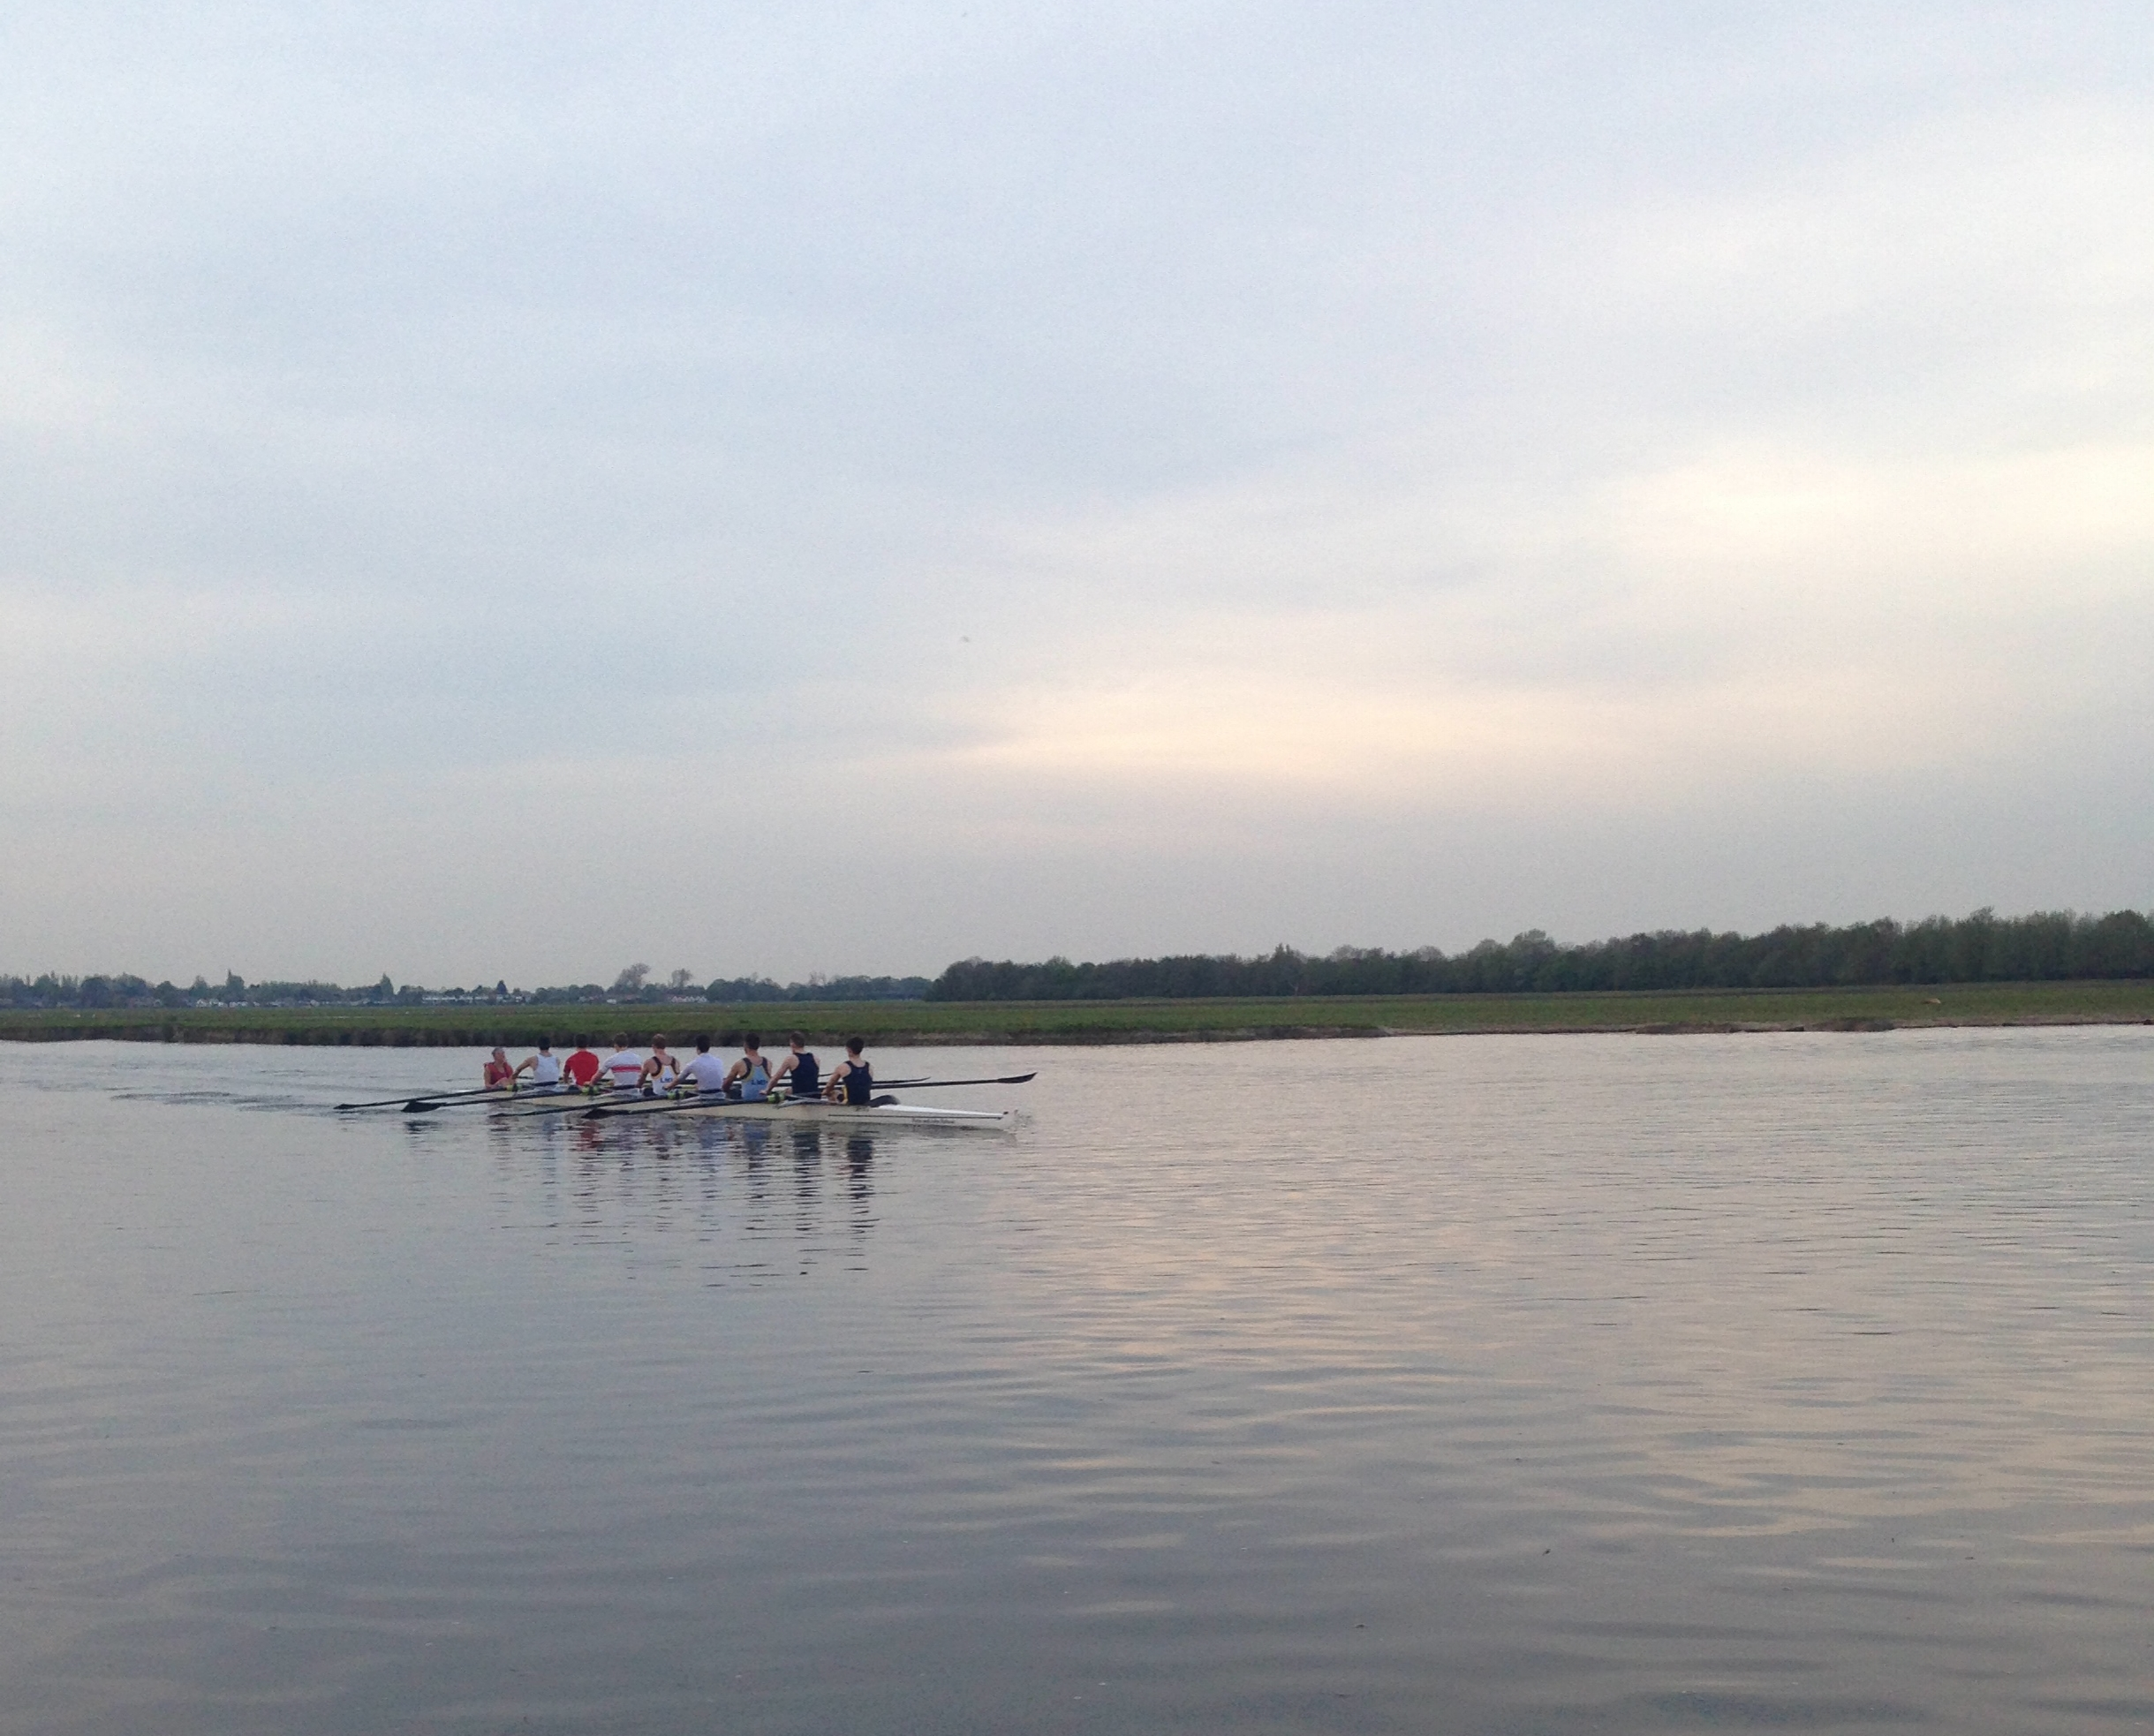 Rowers on the river at Port Meadow